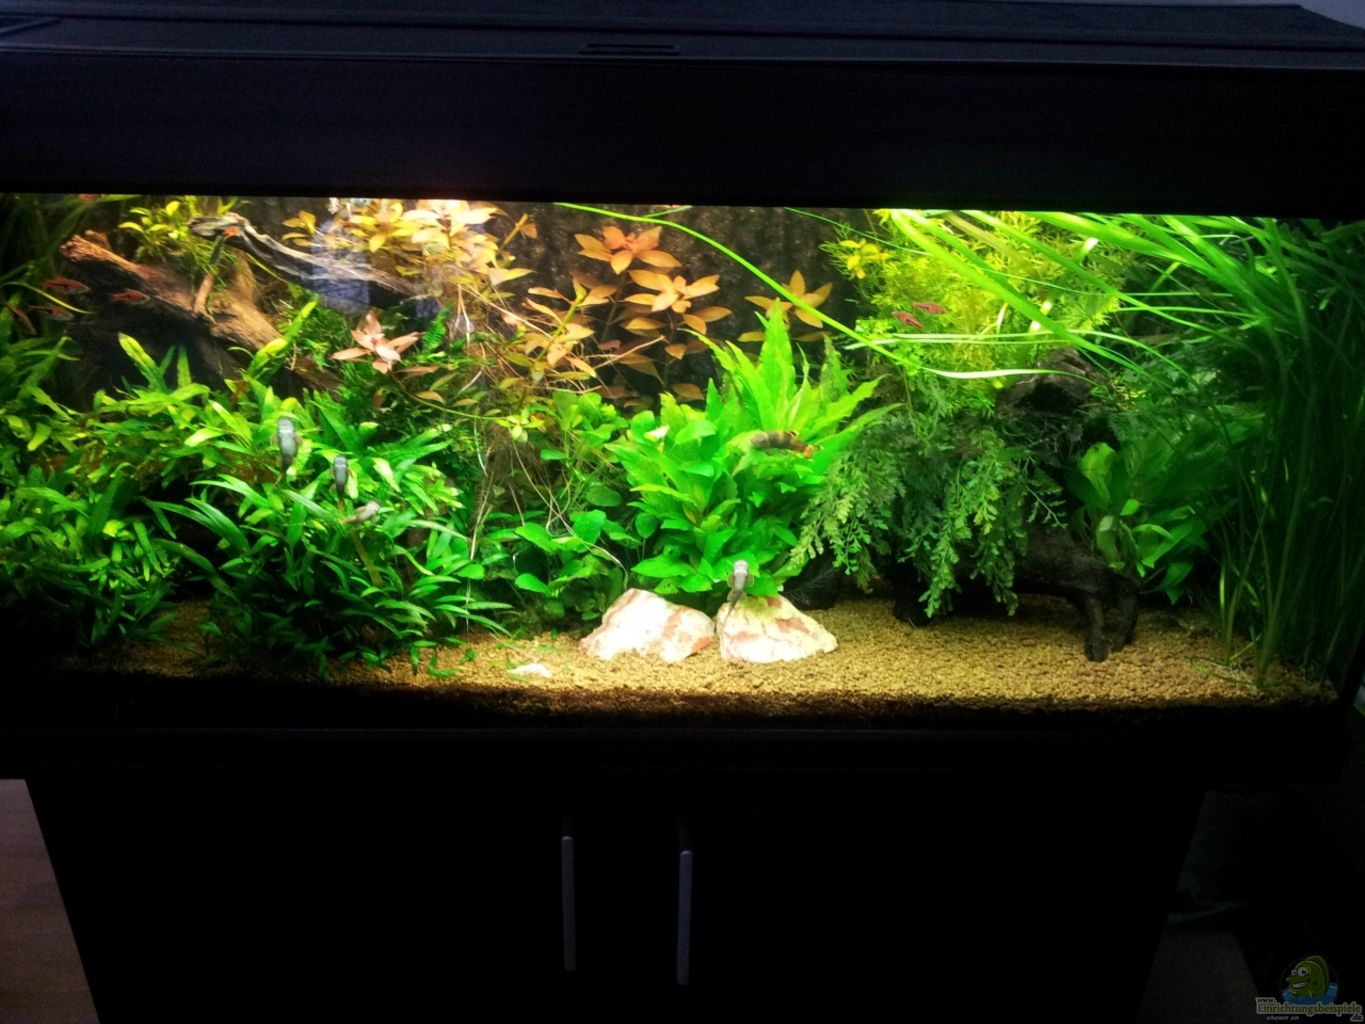 Example No 12753 From The Category Community Tanks Thermometer Original For Aquascape Aquarium Hauptansicht Von Unterwasserdschungel